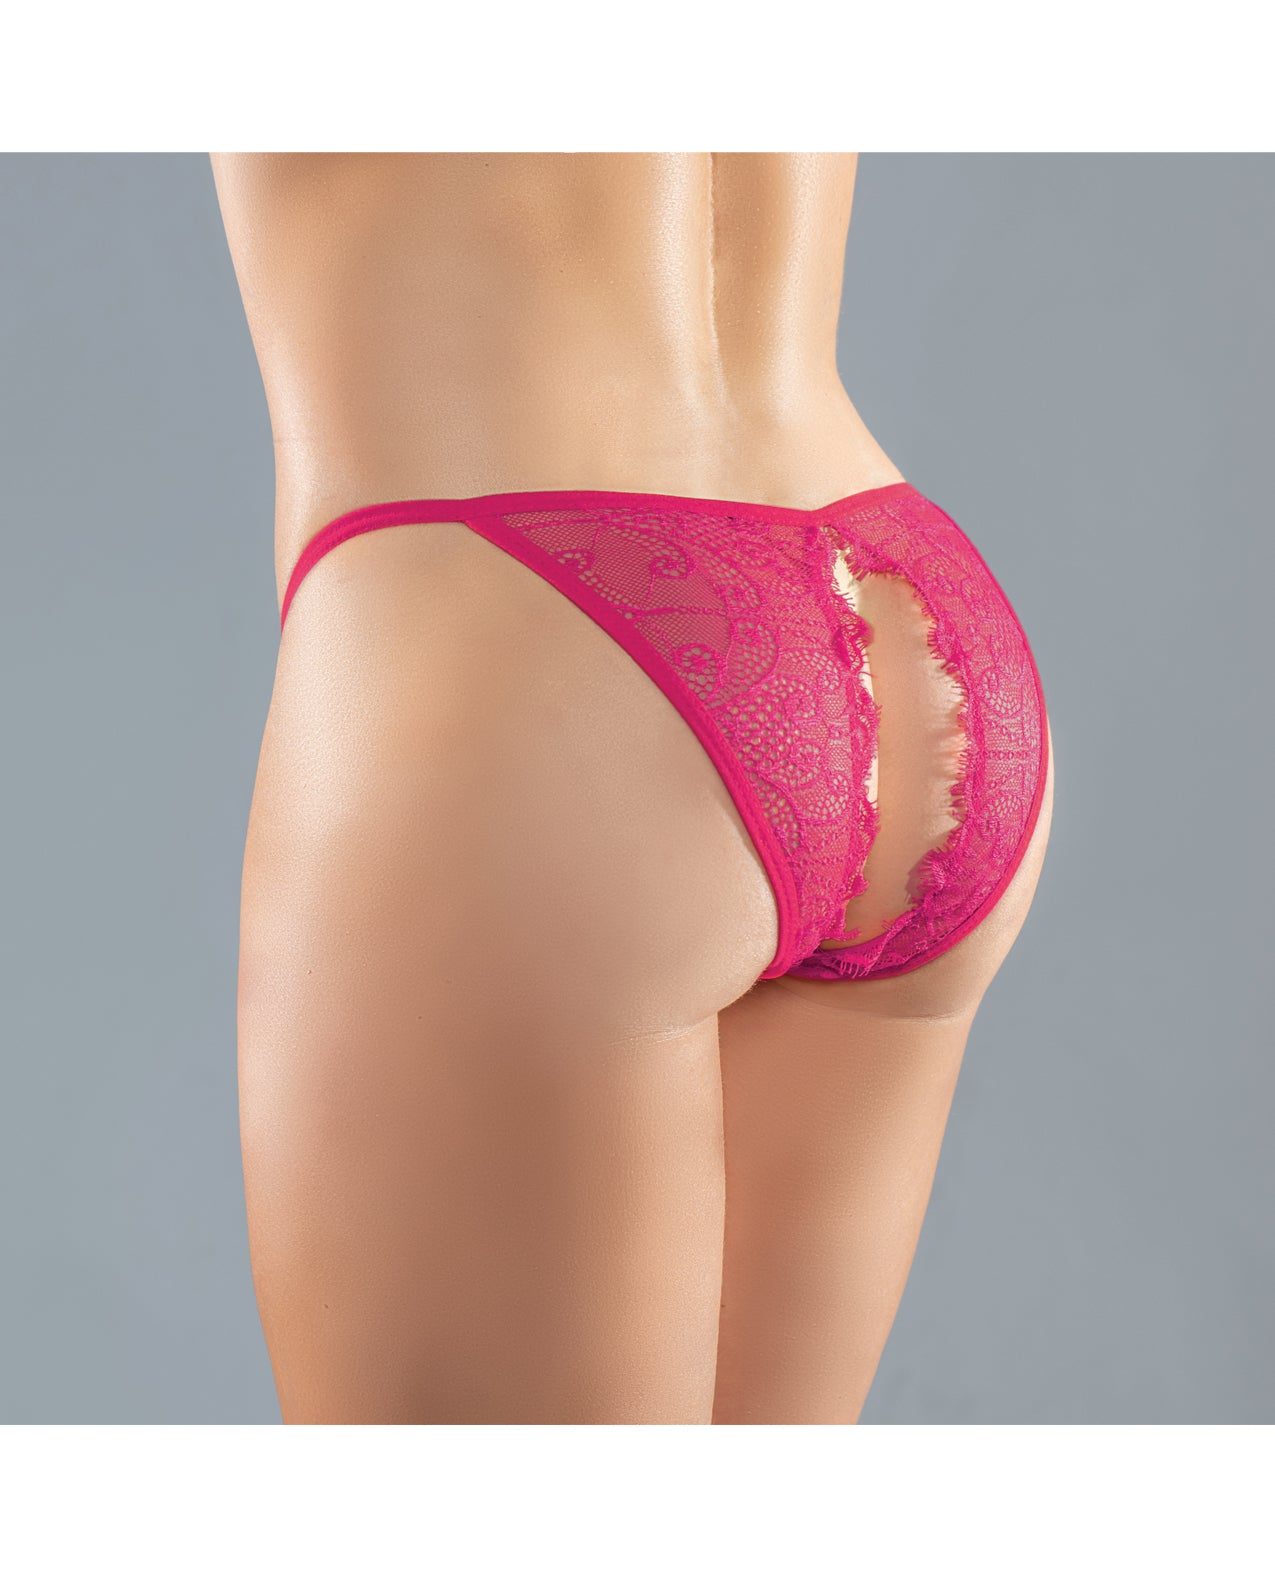 Adore Lace Enchanted Belle Panty Hot Pink O/S